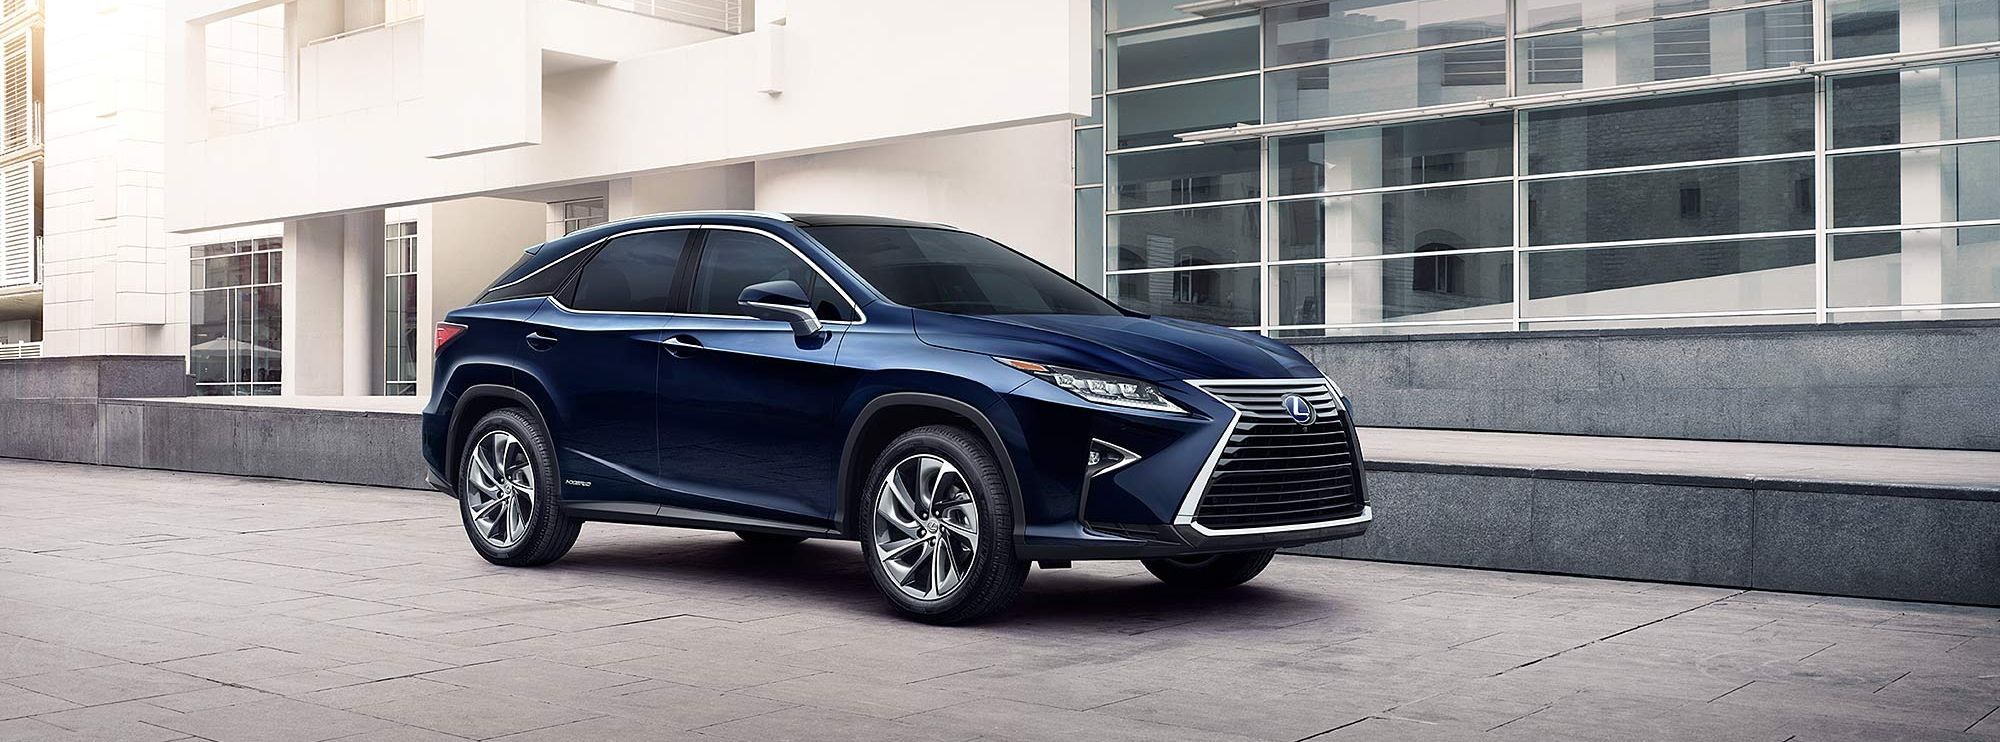 2016 Lexus RX for sale near Sterling, VA